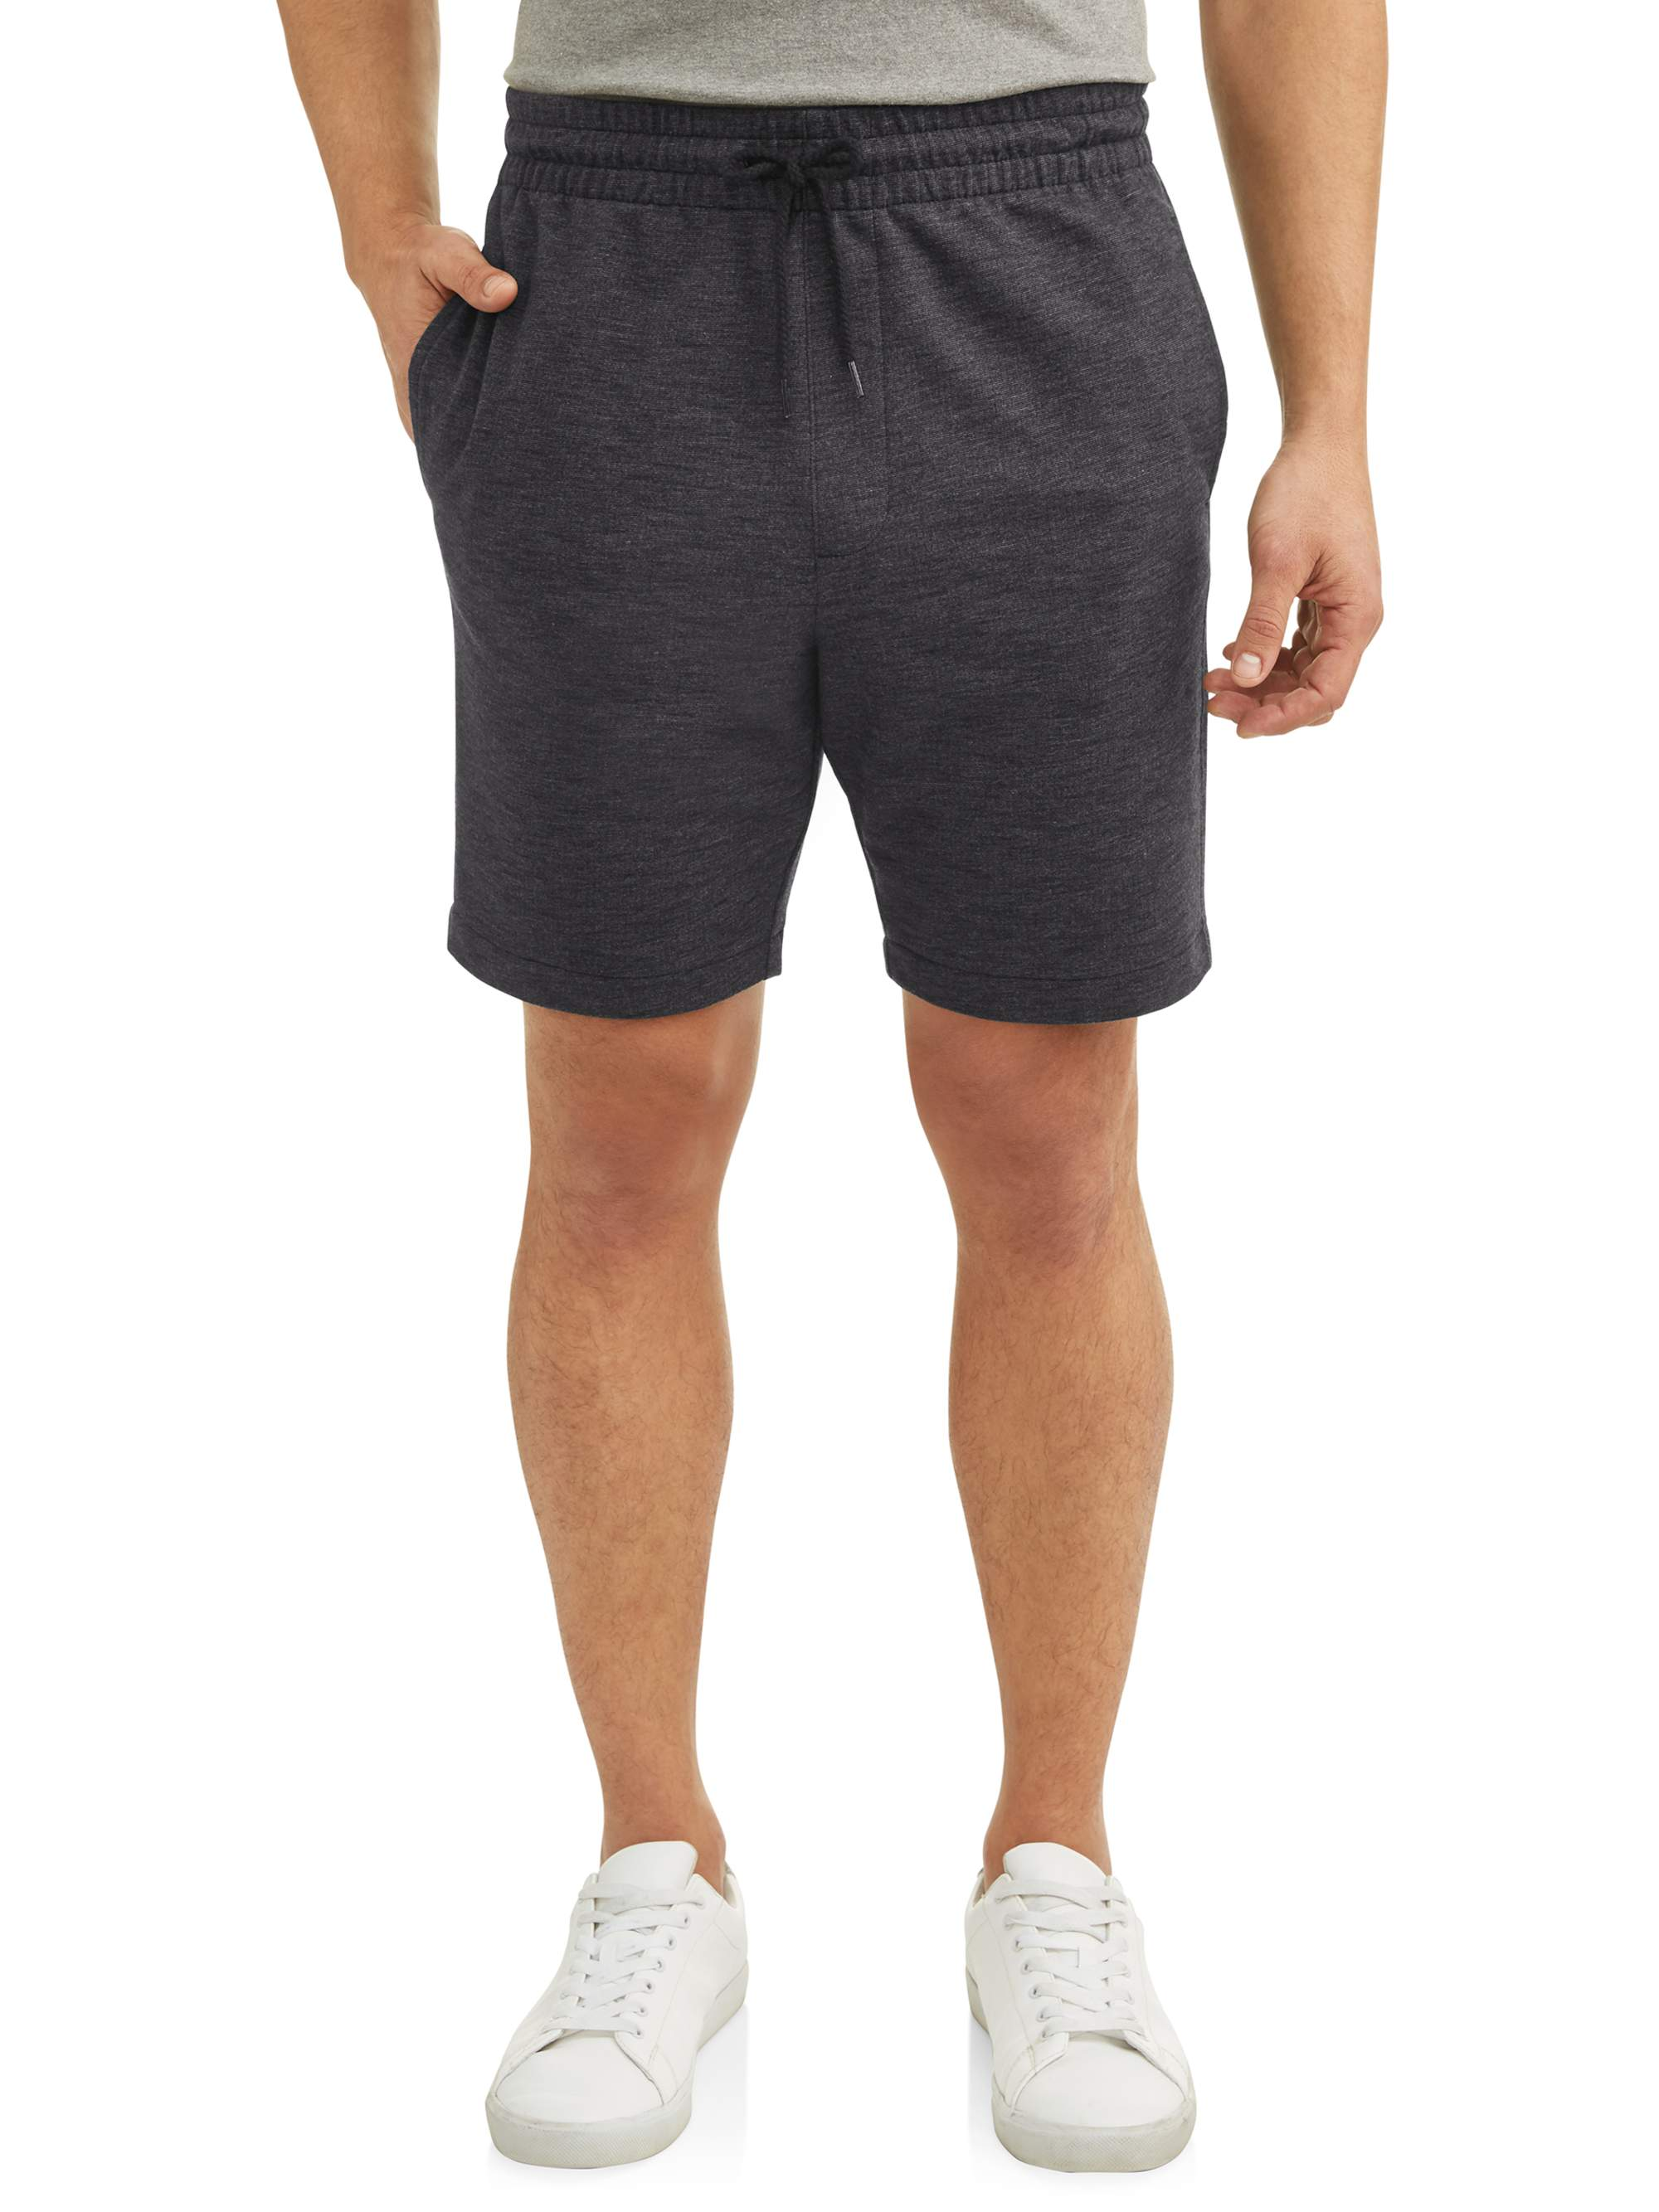 Big Men's Knit Jogger Shorts